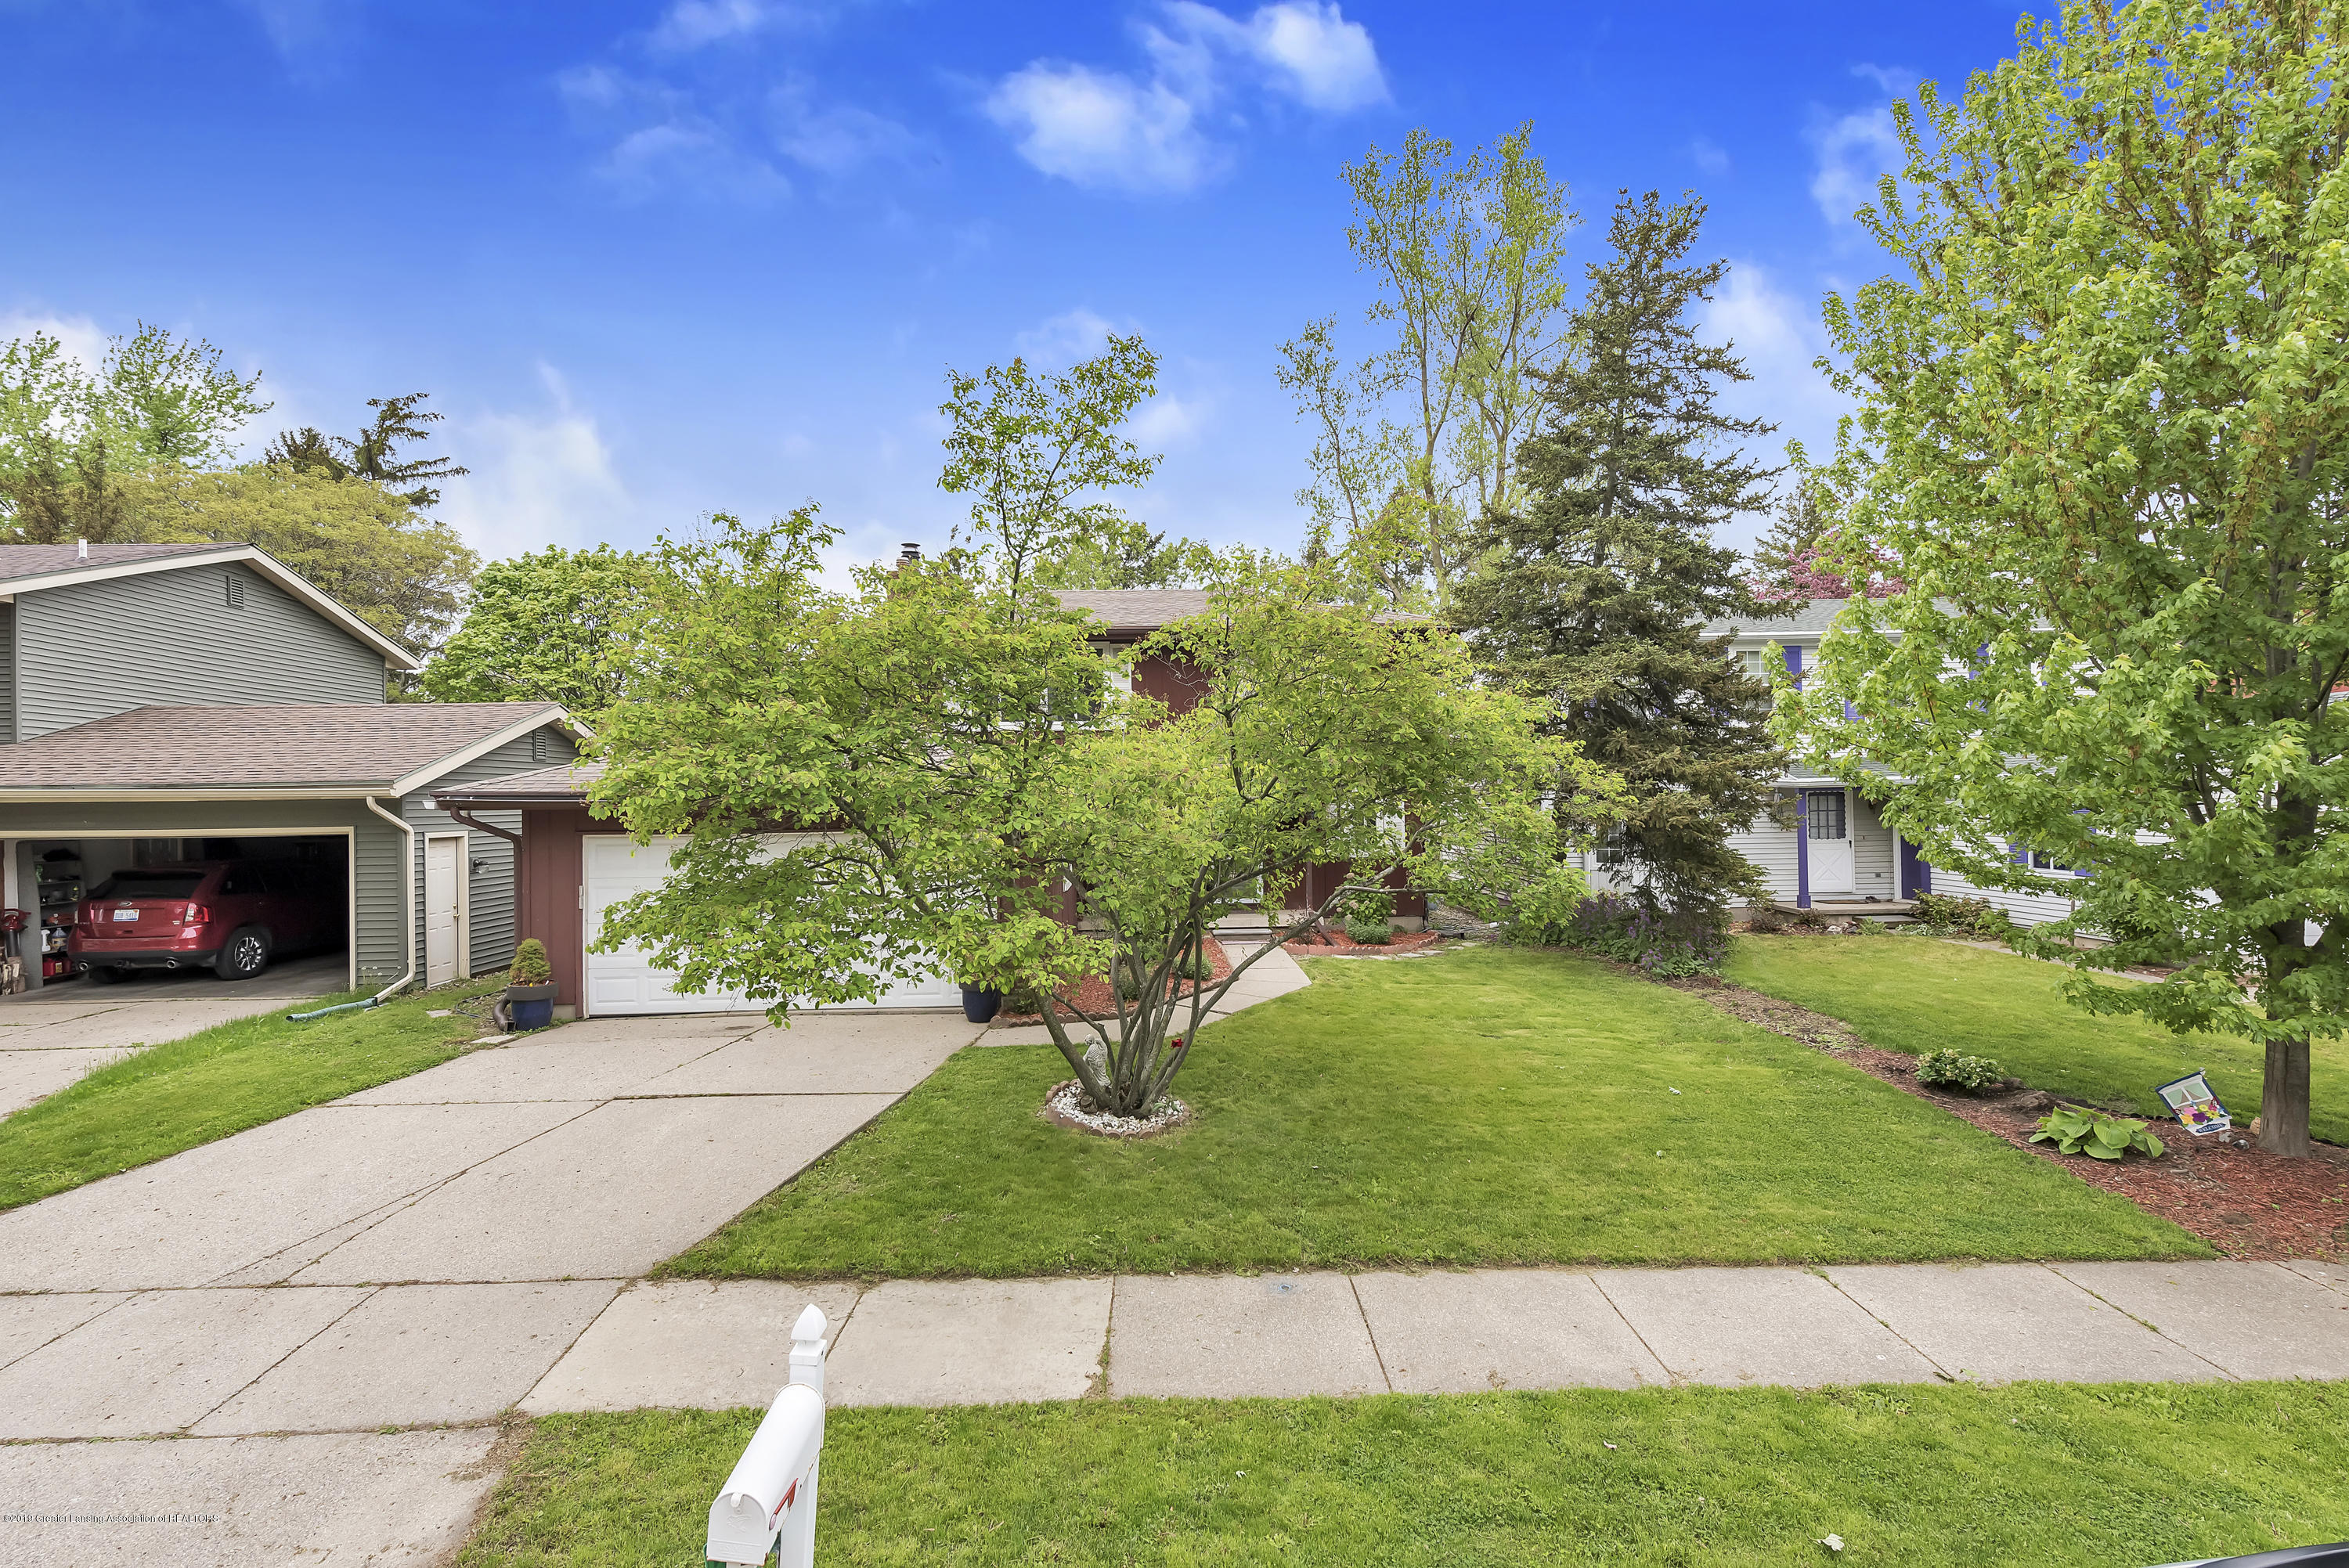 1336 Chartwell Dual Carriage Way - 1336-Chartwell-Duel-Carriage-Way-South-E - 4